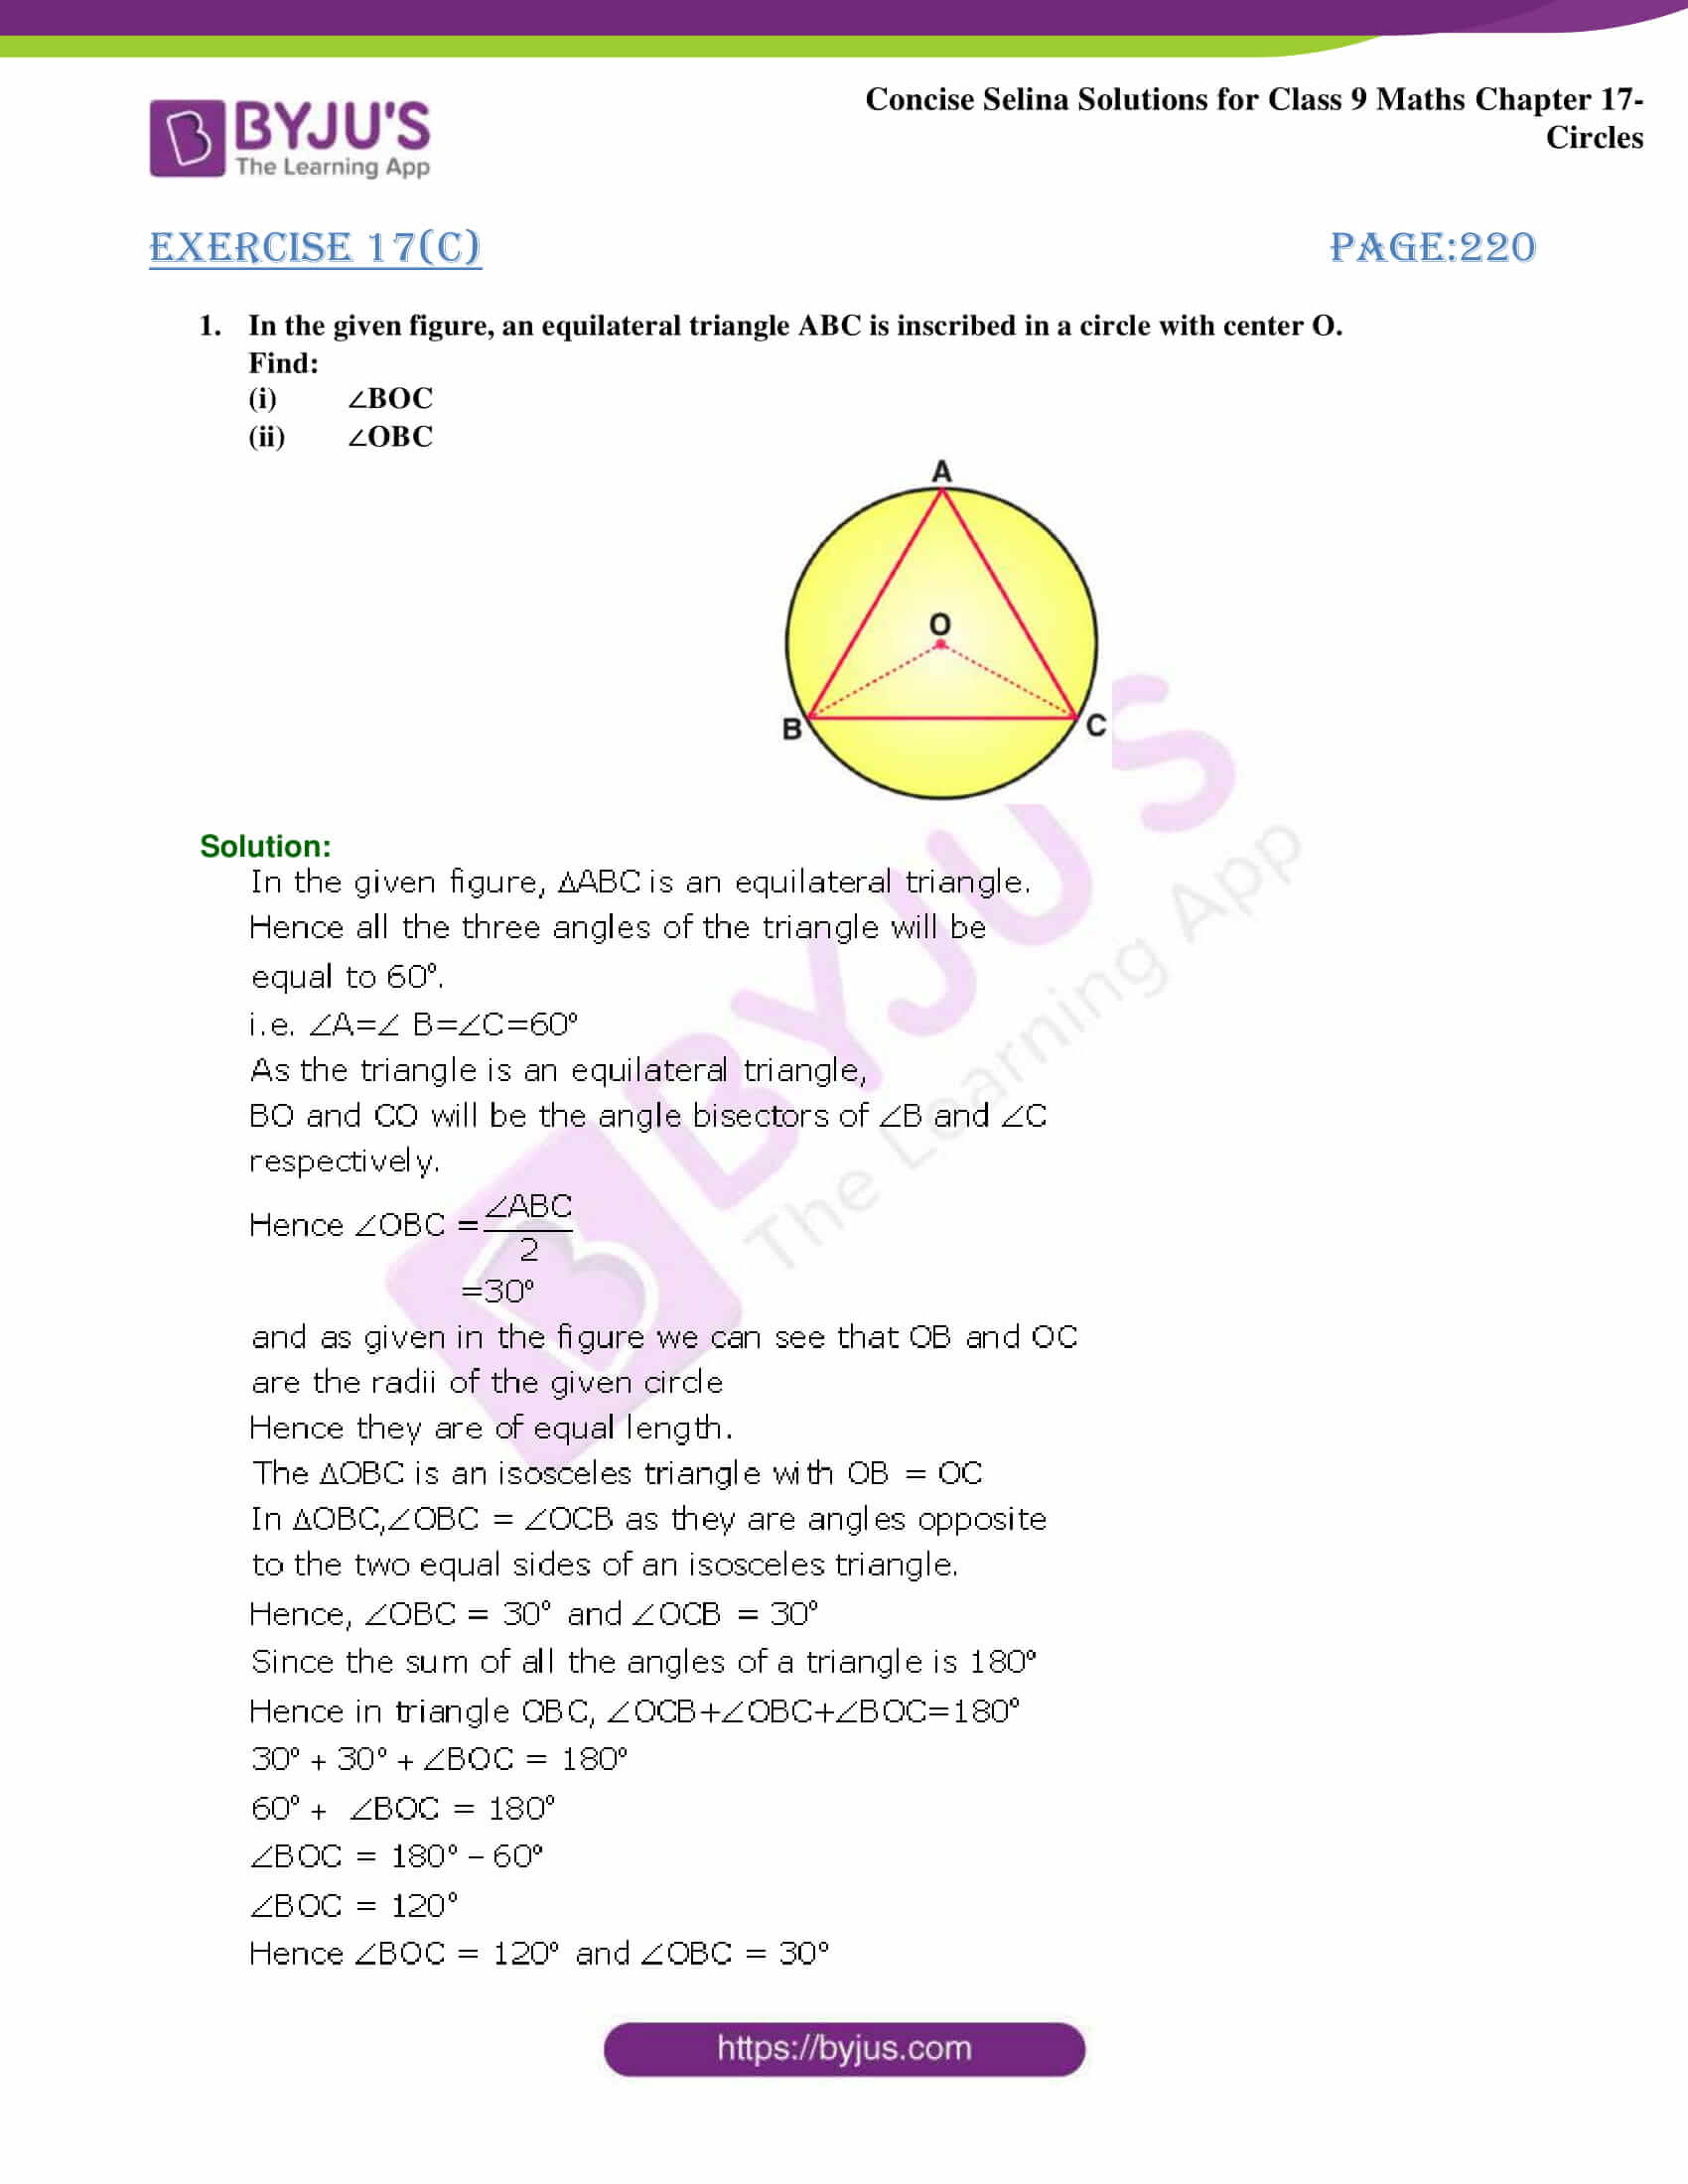 Concise Selina Solutions Class 9 Maths Chapter 17 Circles part 18